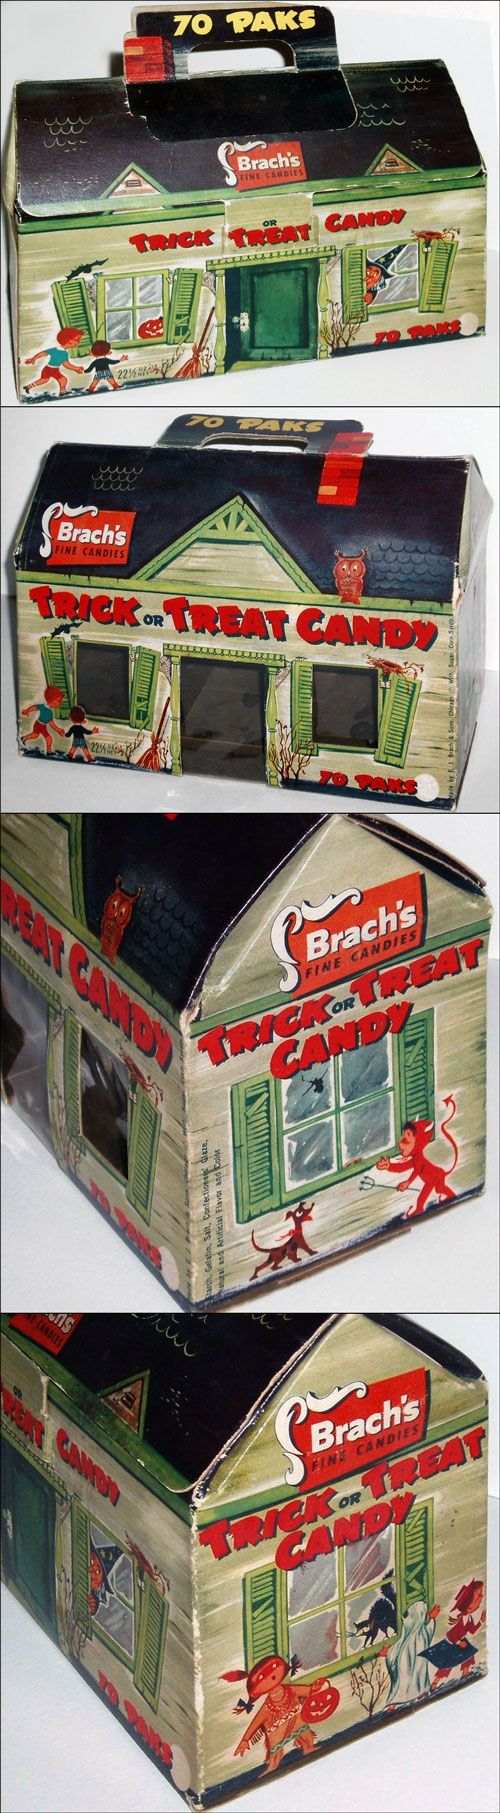 1955 Brach's Trick or Treat Candy Box. I wish they made cool stuff like this again.